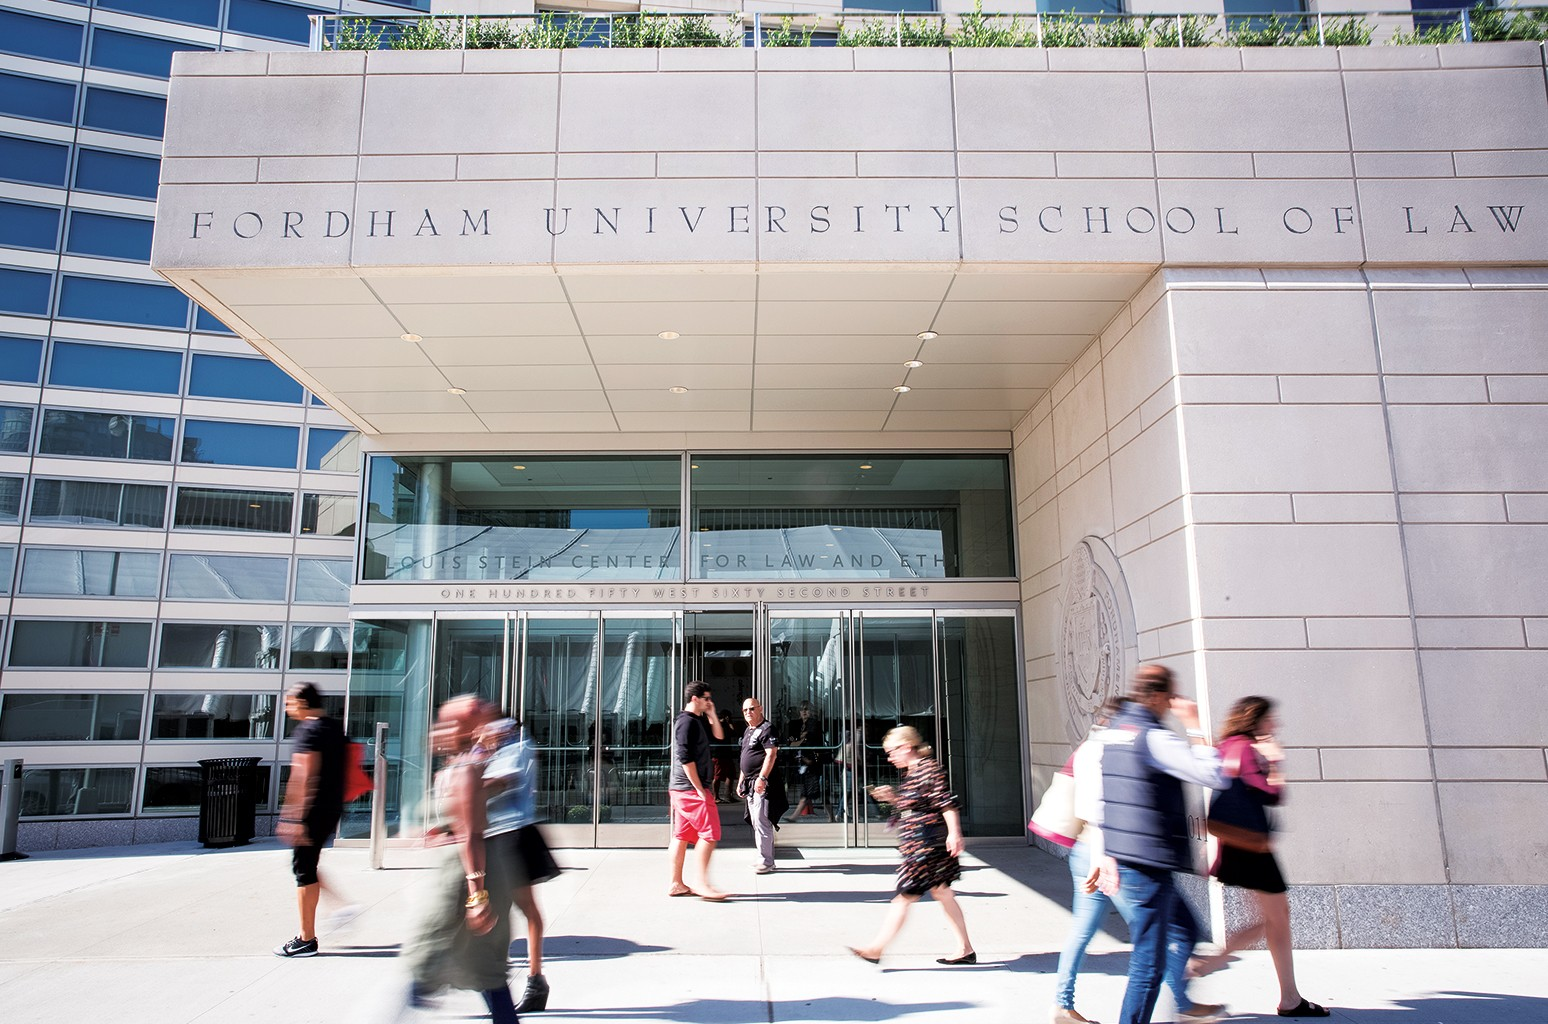 Exterior of Fordham University School of Law in New York.